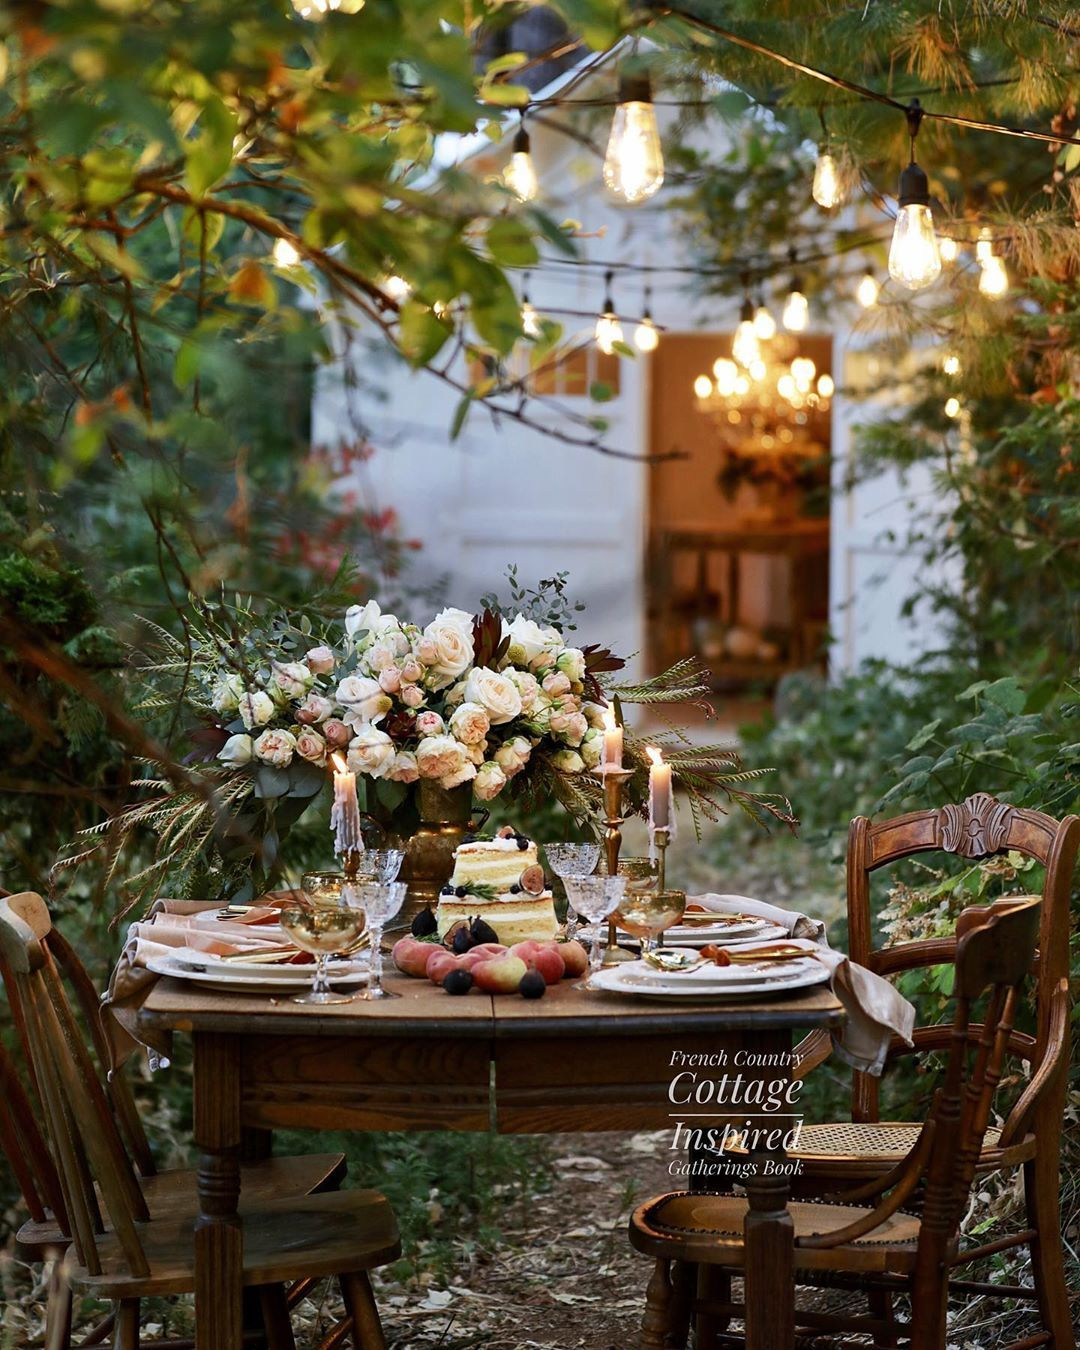 Courtney Allison On Instagram It Is French Country Cottage Inspired Gatherings Book Birt In 2020 French Country Cottage Farmhouse Table Setting French Country Garden